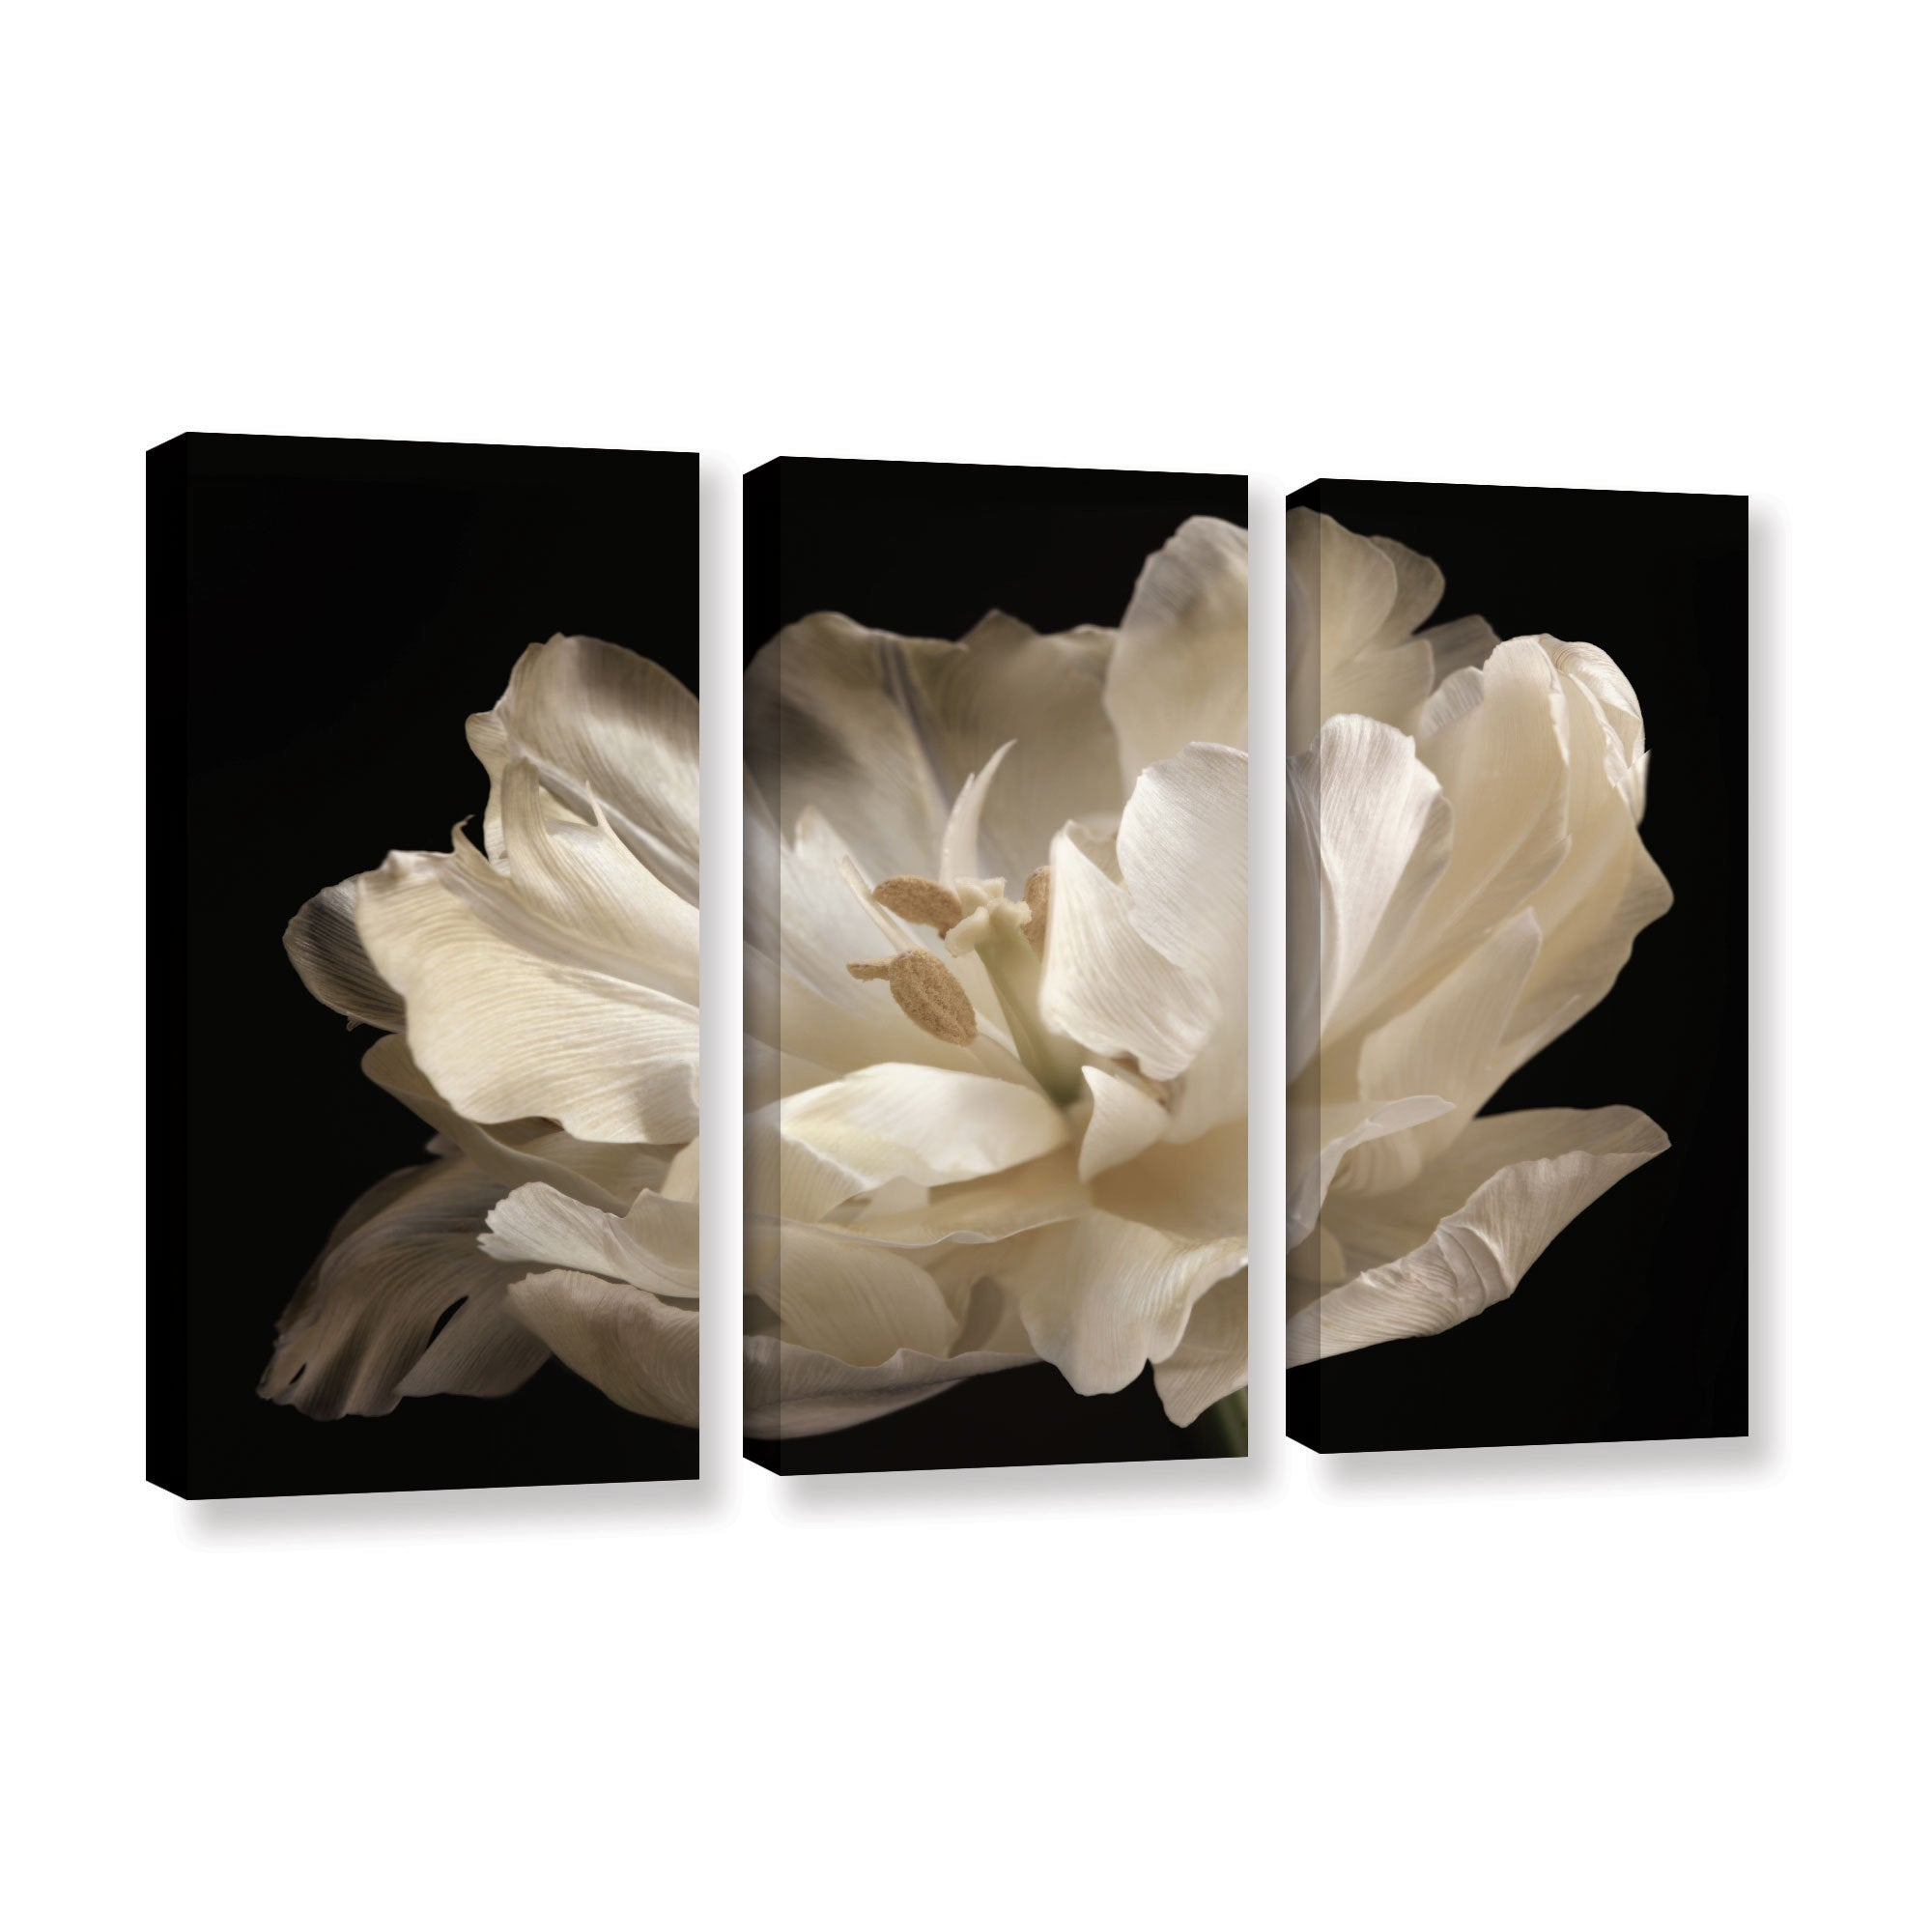 Shop Artwall Cora Nieles White Tulip 3 Piece Gallery Wrapped Canvas